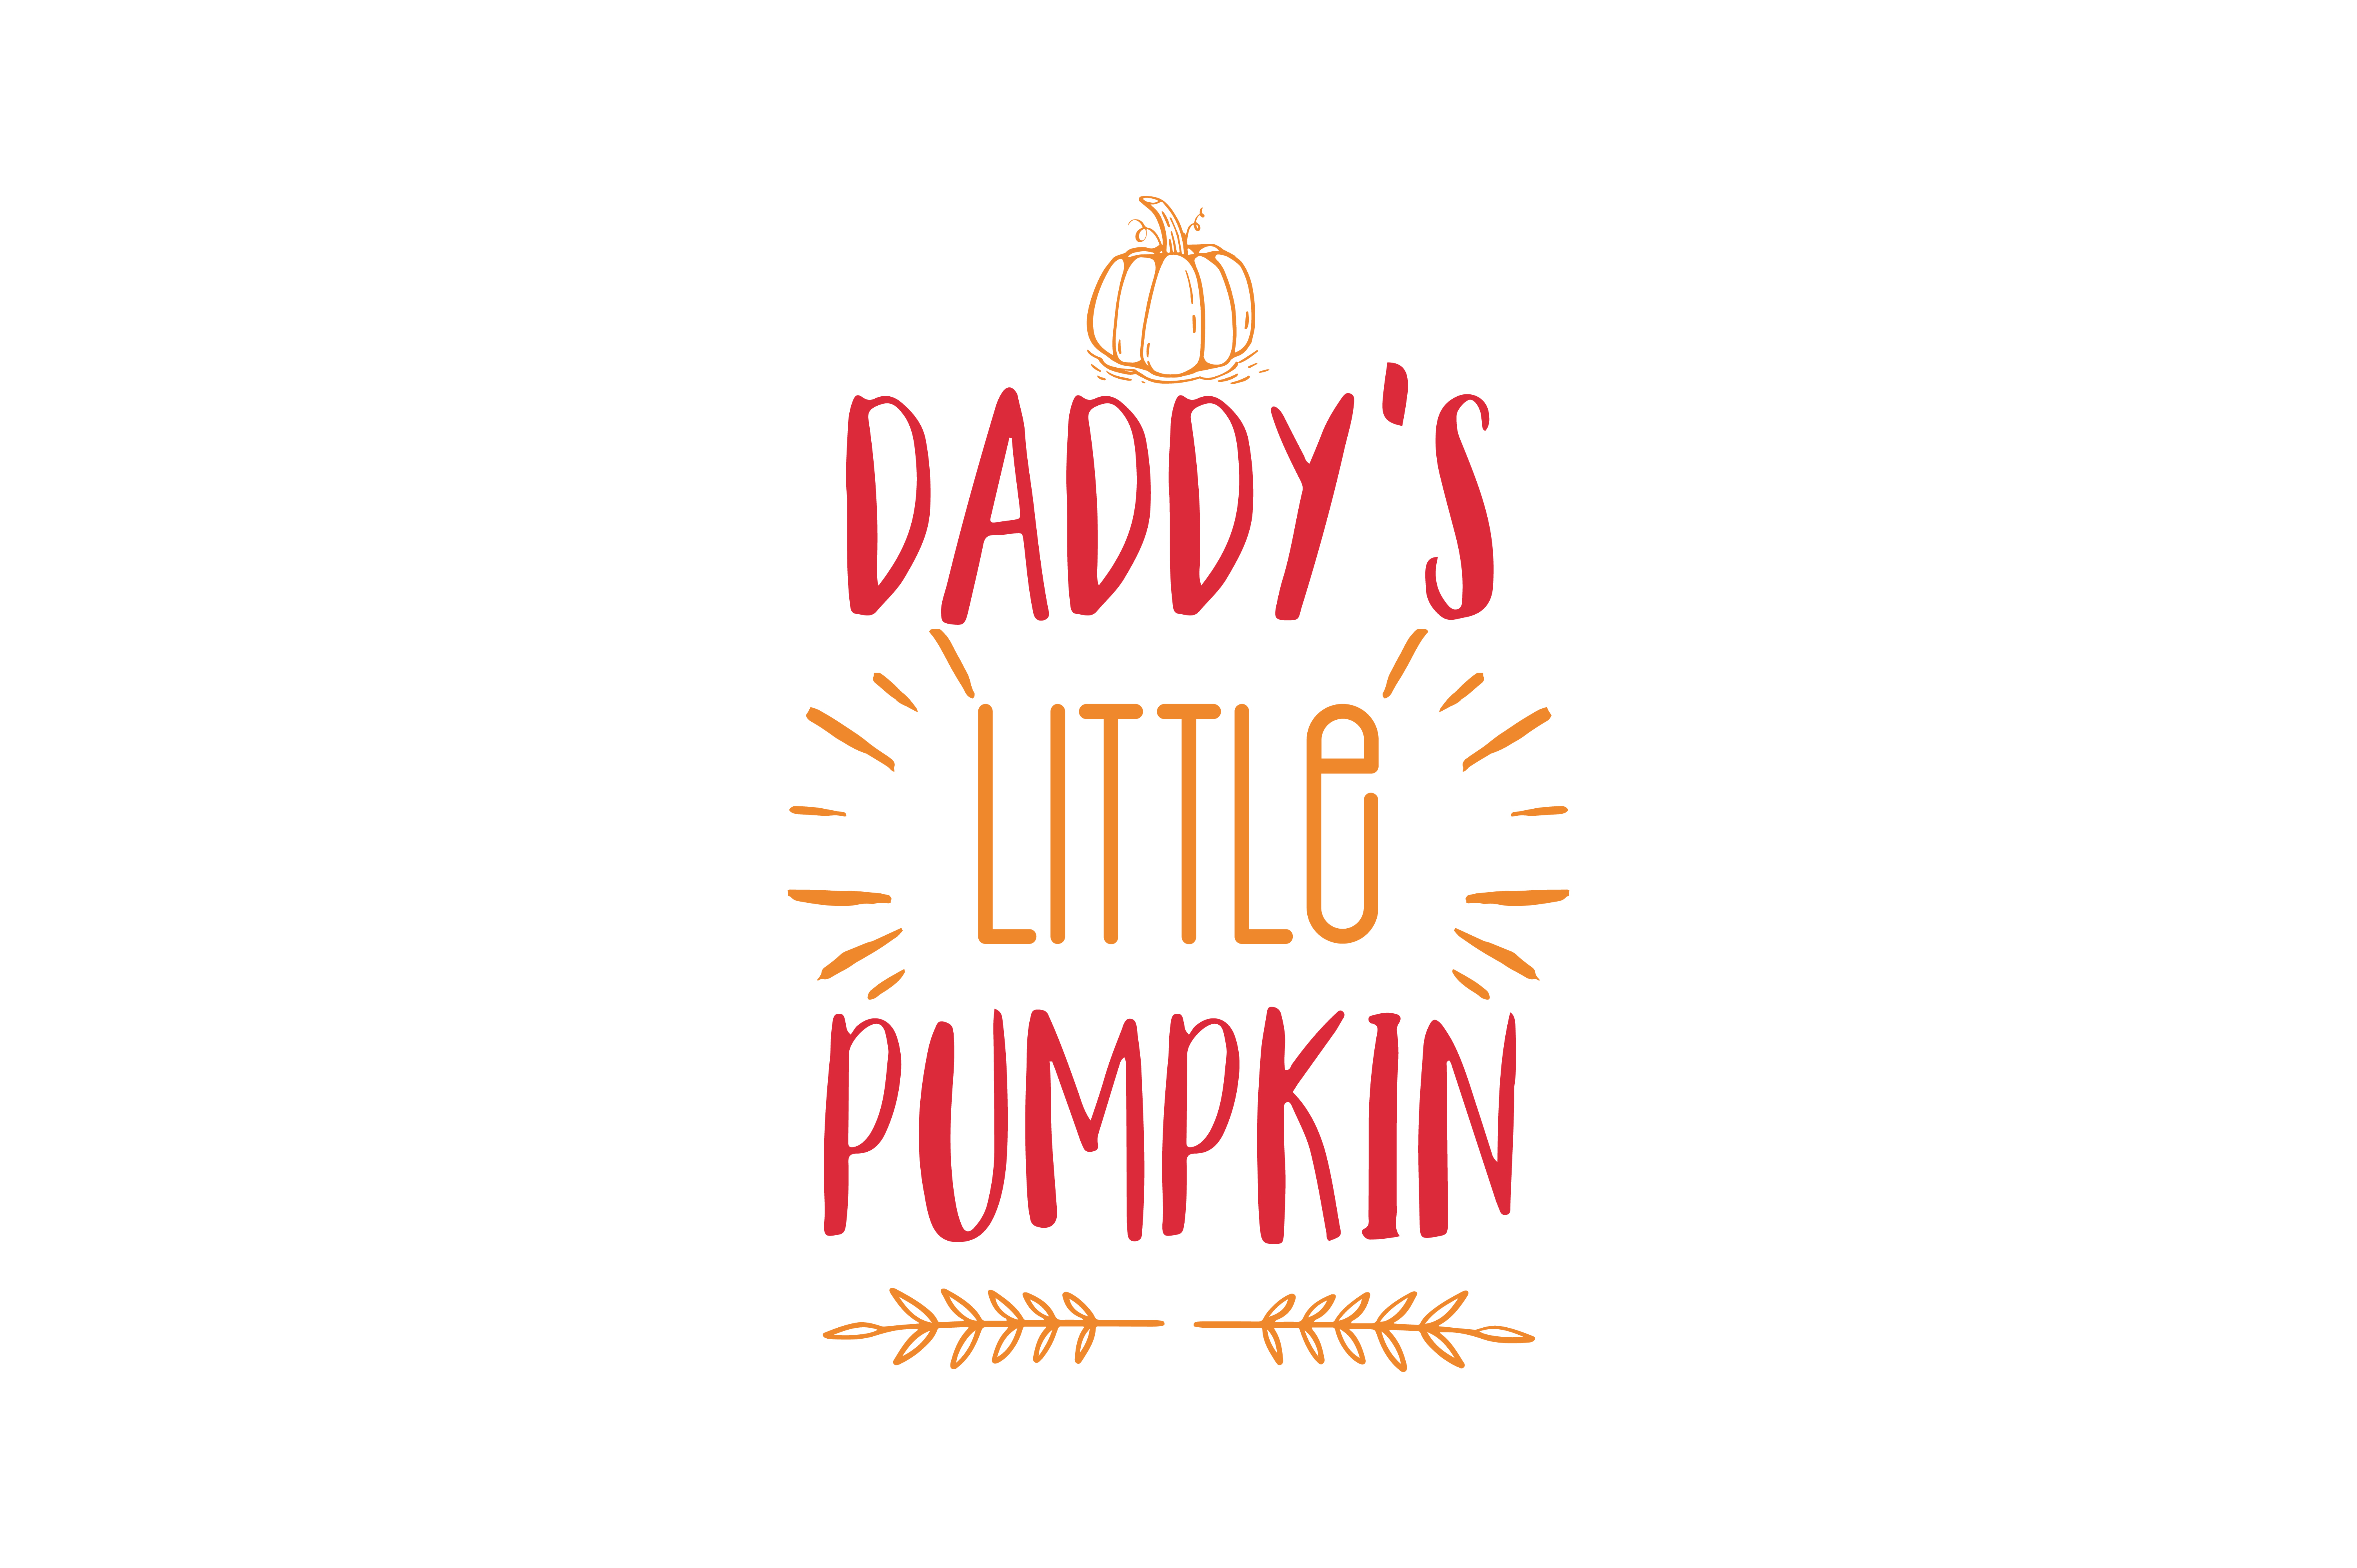 Download Free Mommy S Daddy S Little Pumpkin Quote Svg Cut Graphic By Thelucky for Cricut Explore, Silhouette and other cutting machines.